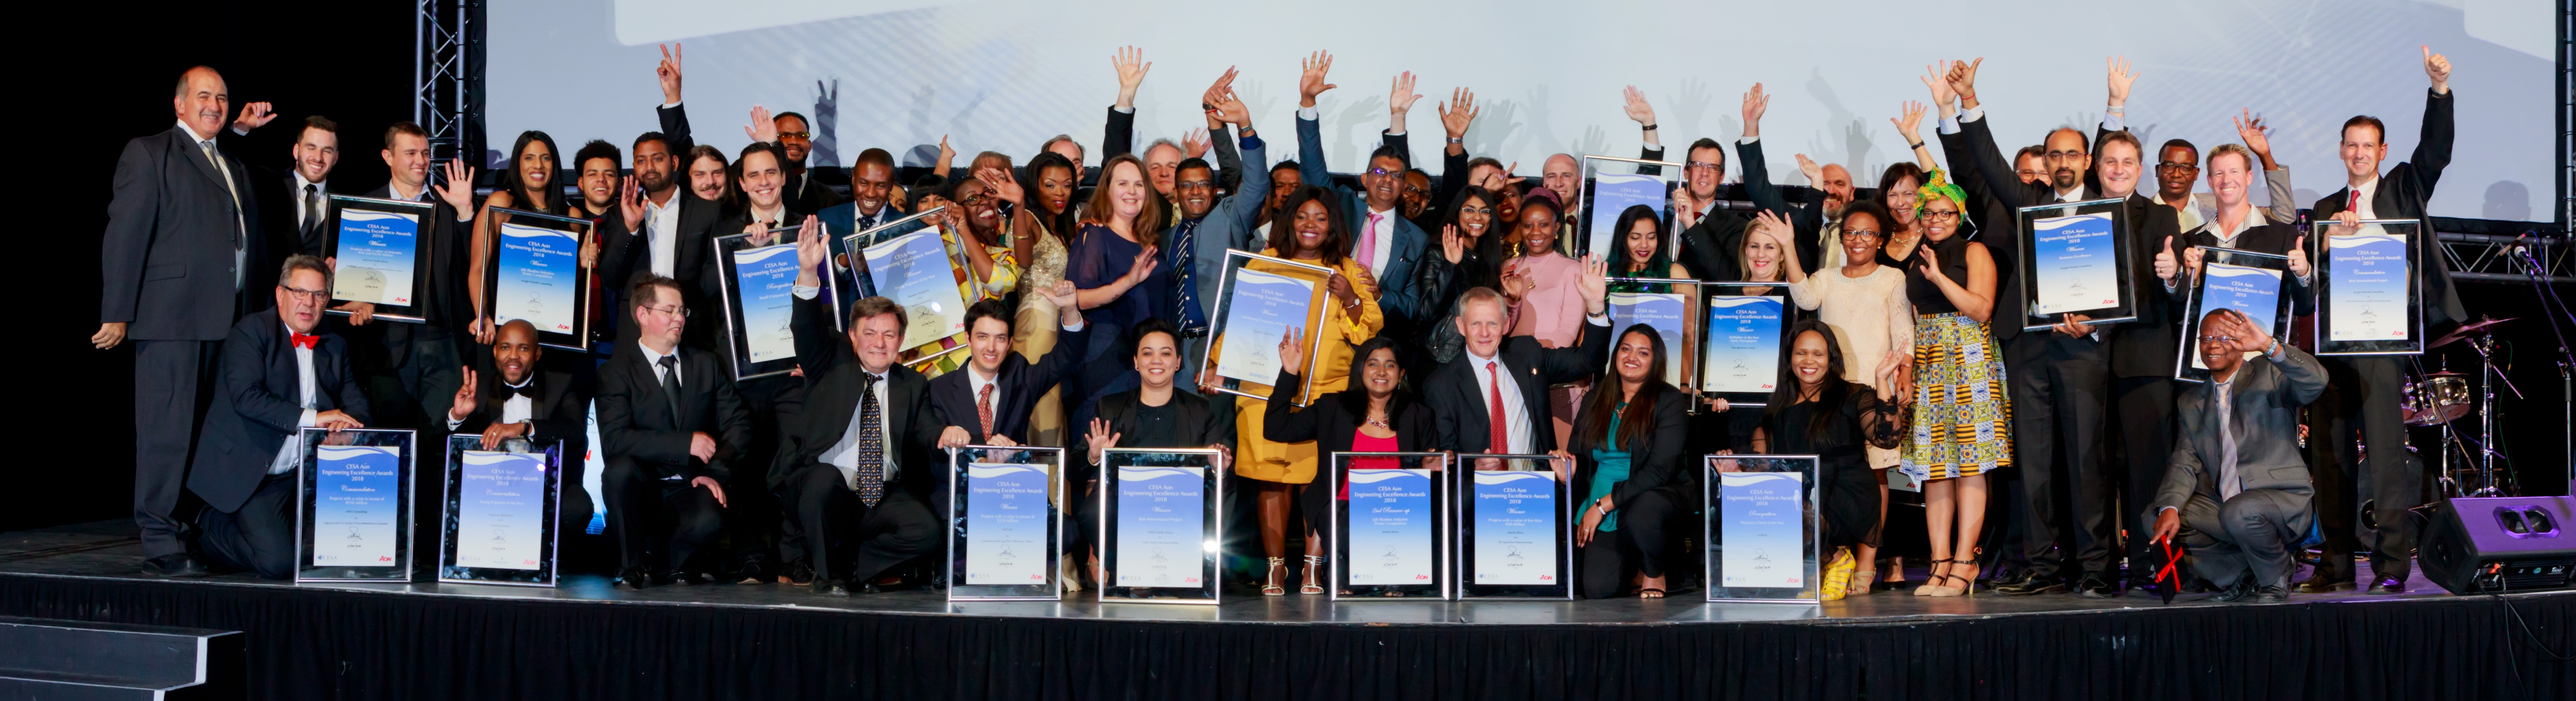 CESA Aon Awards winners of 2018.